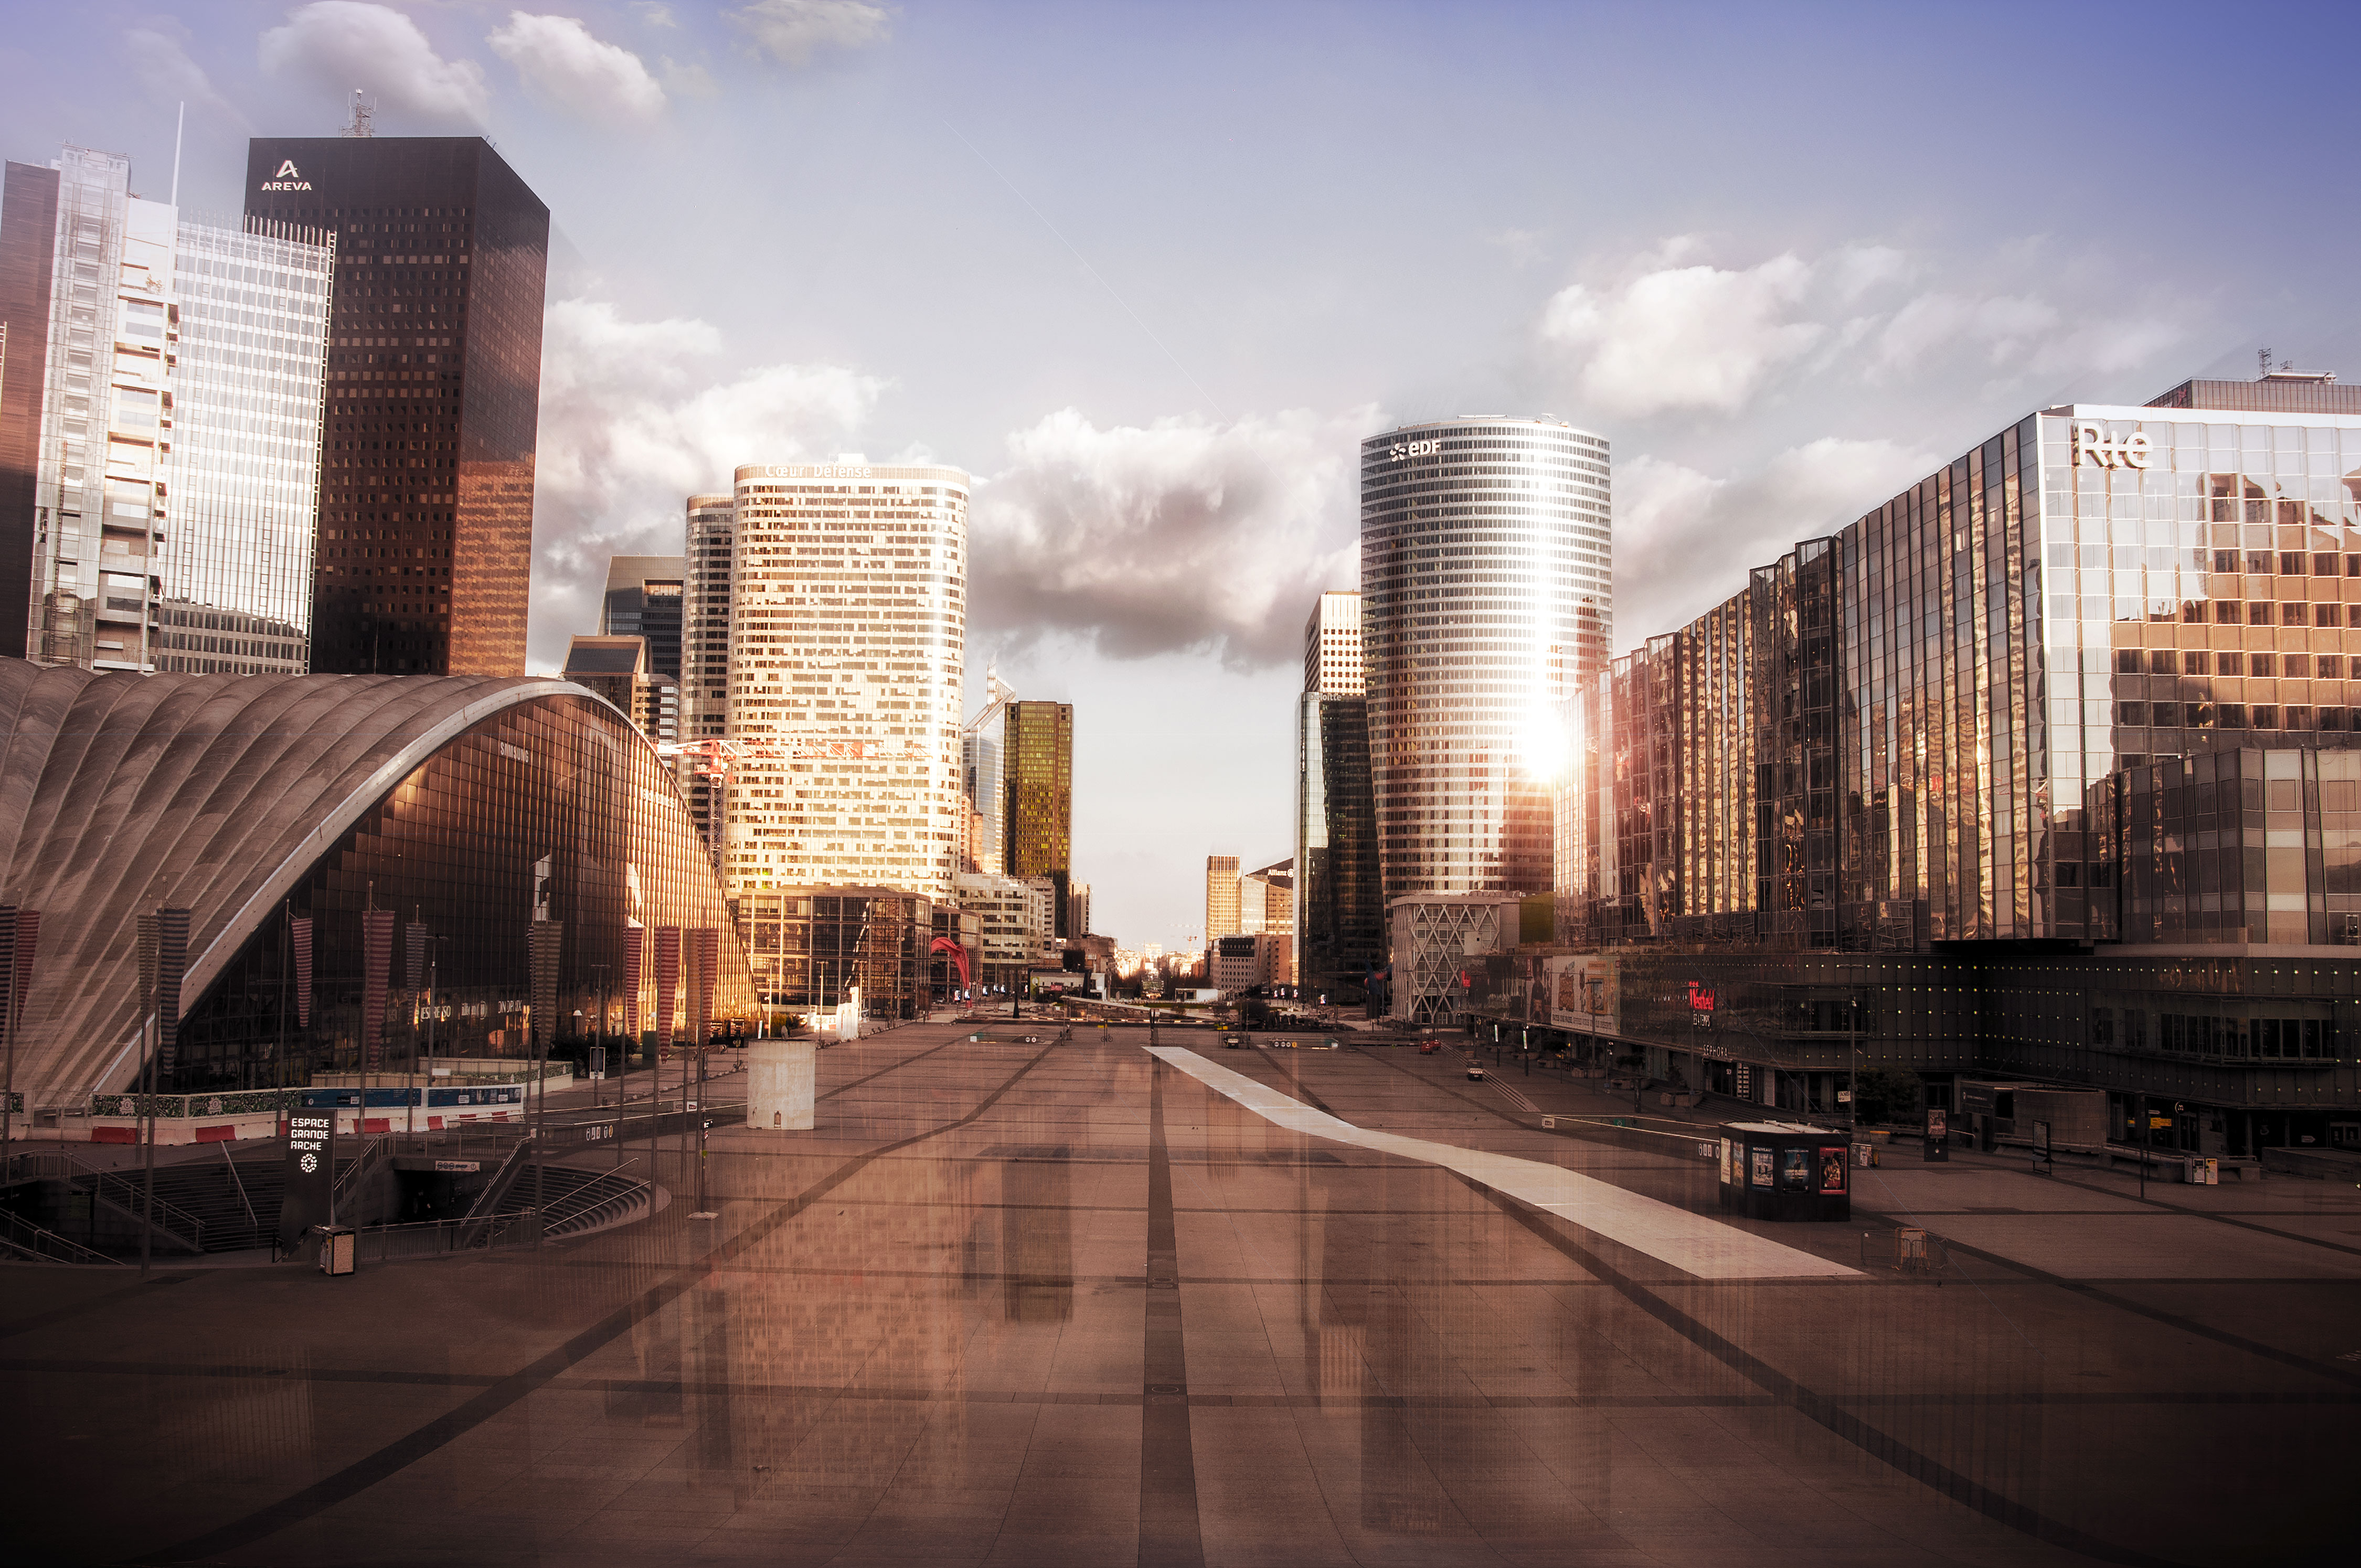 Paris La Défense, the French business district is empty like a ghost city because of the quarantine due to the Coronavirus COVID-19 2020, (Nos Dren)